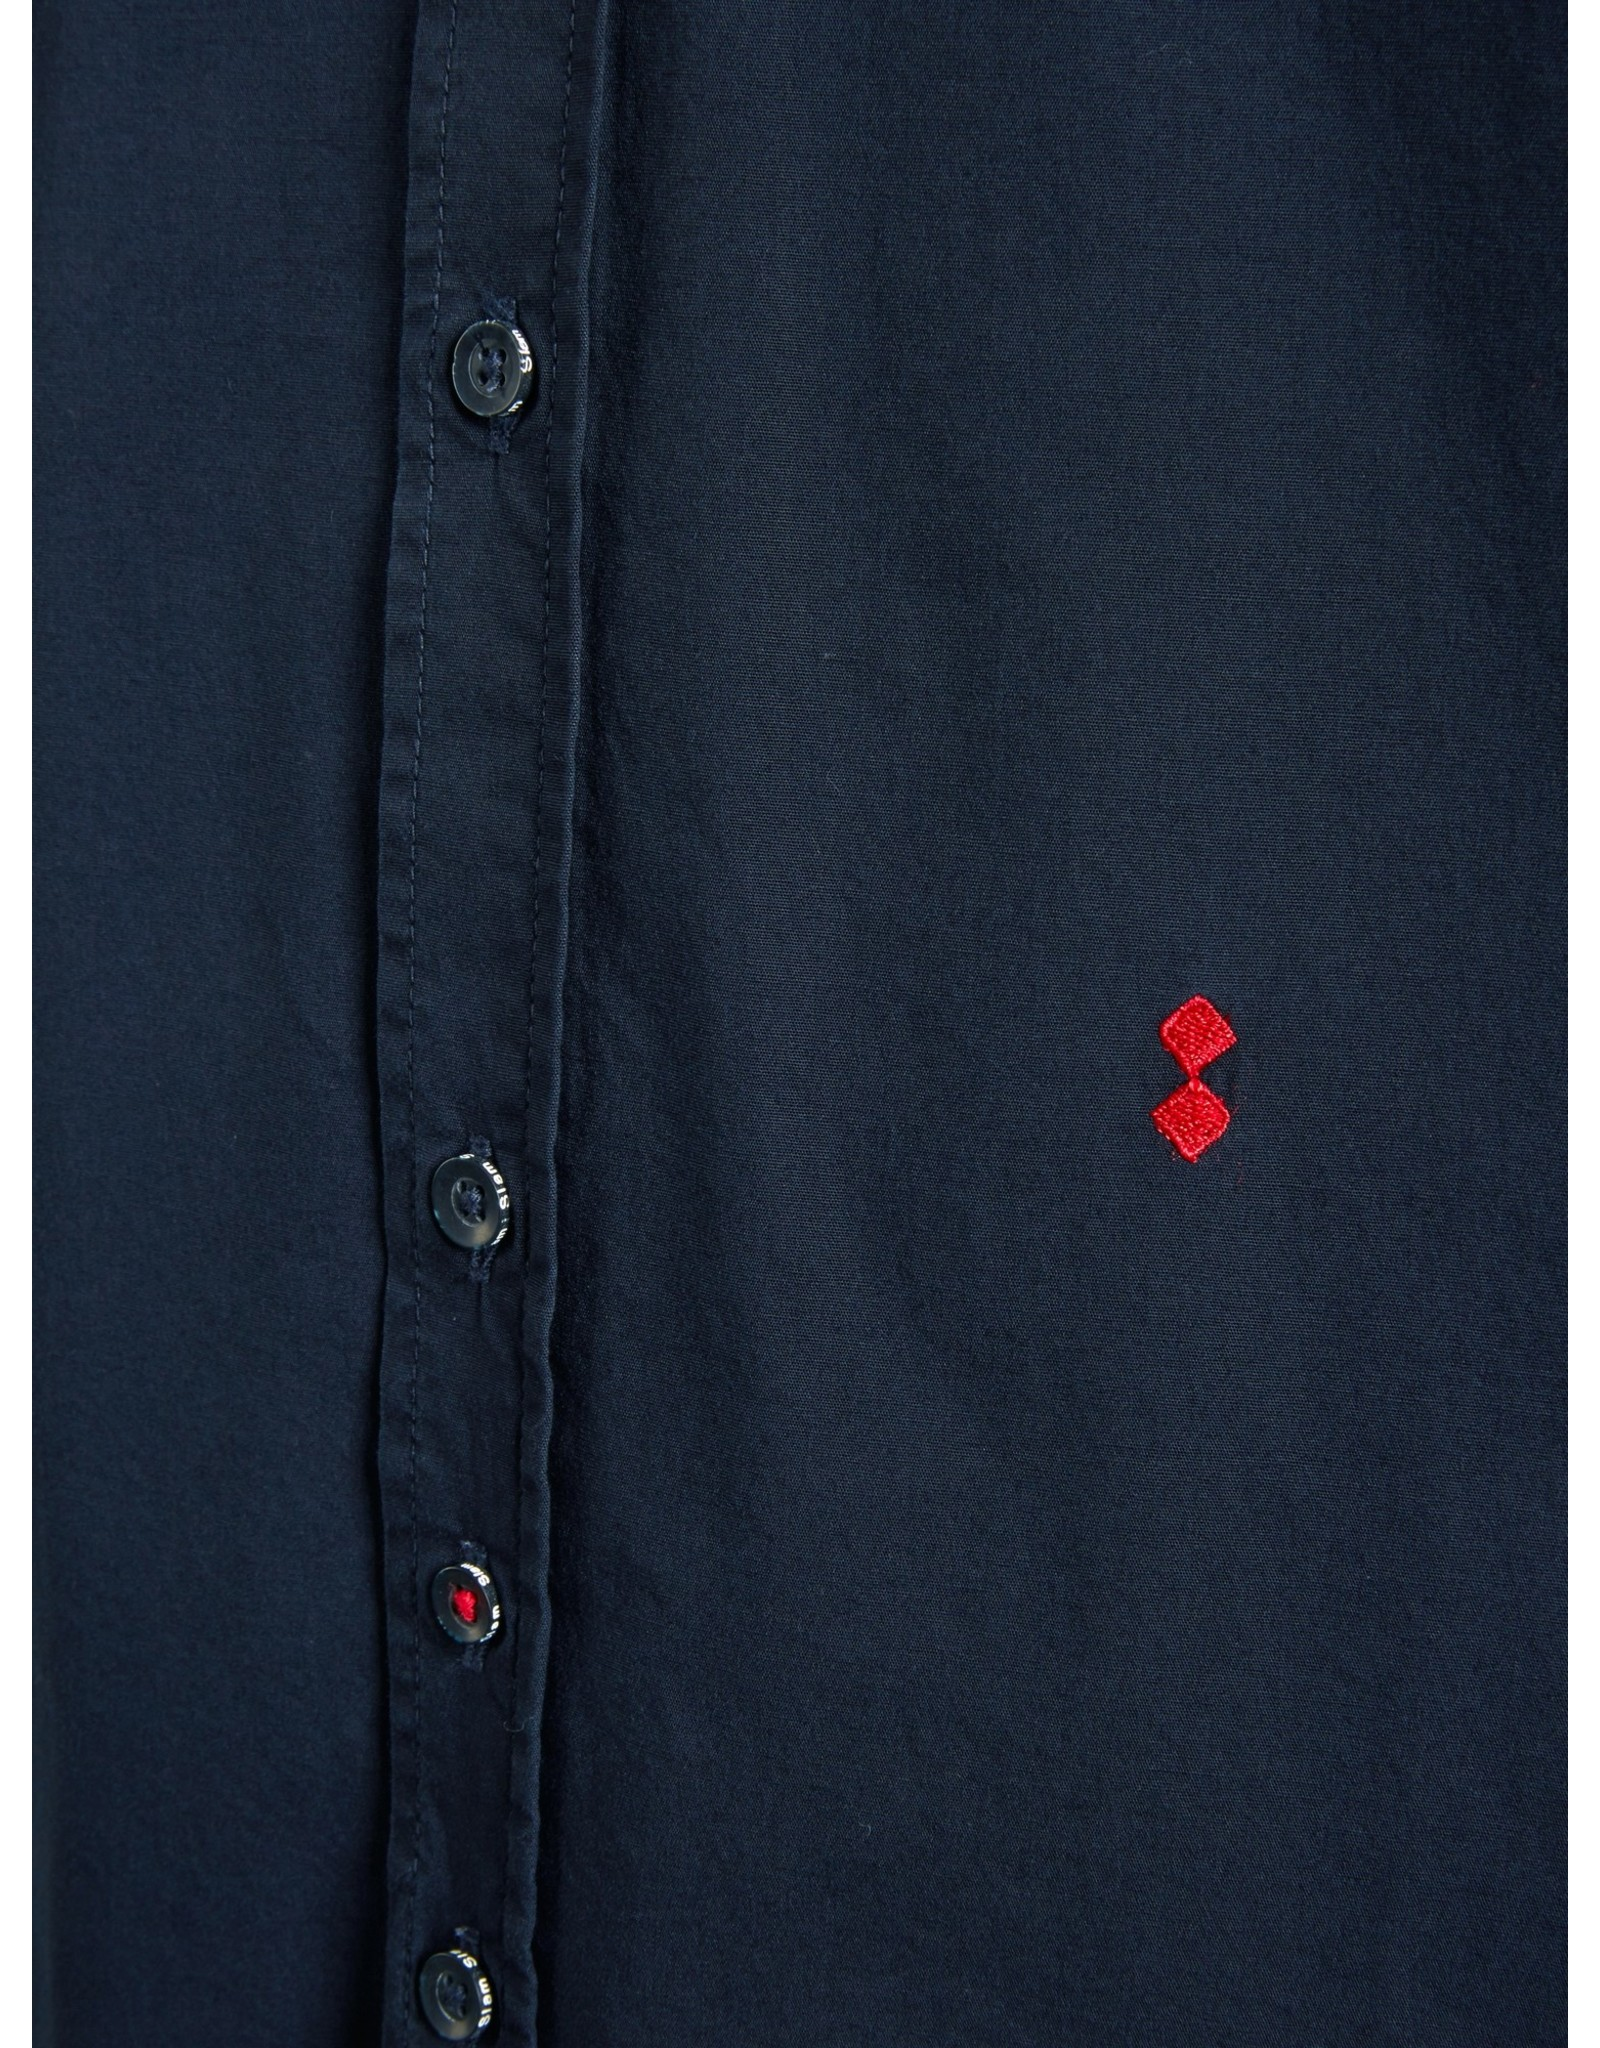 Slam Shirt B12 - NAVY ( 150 )